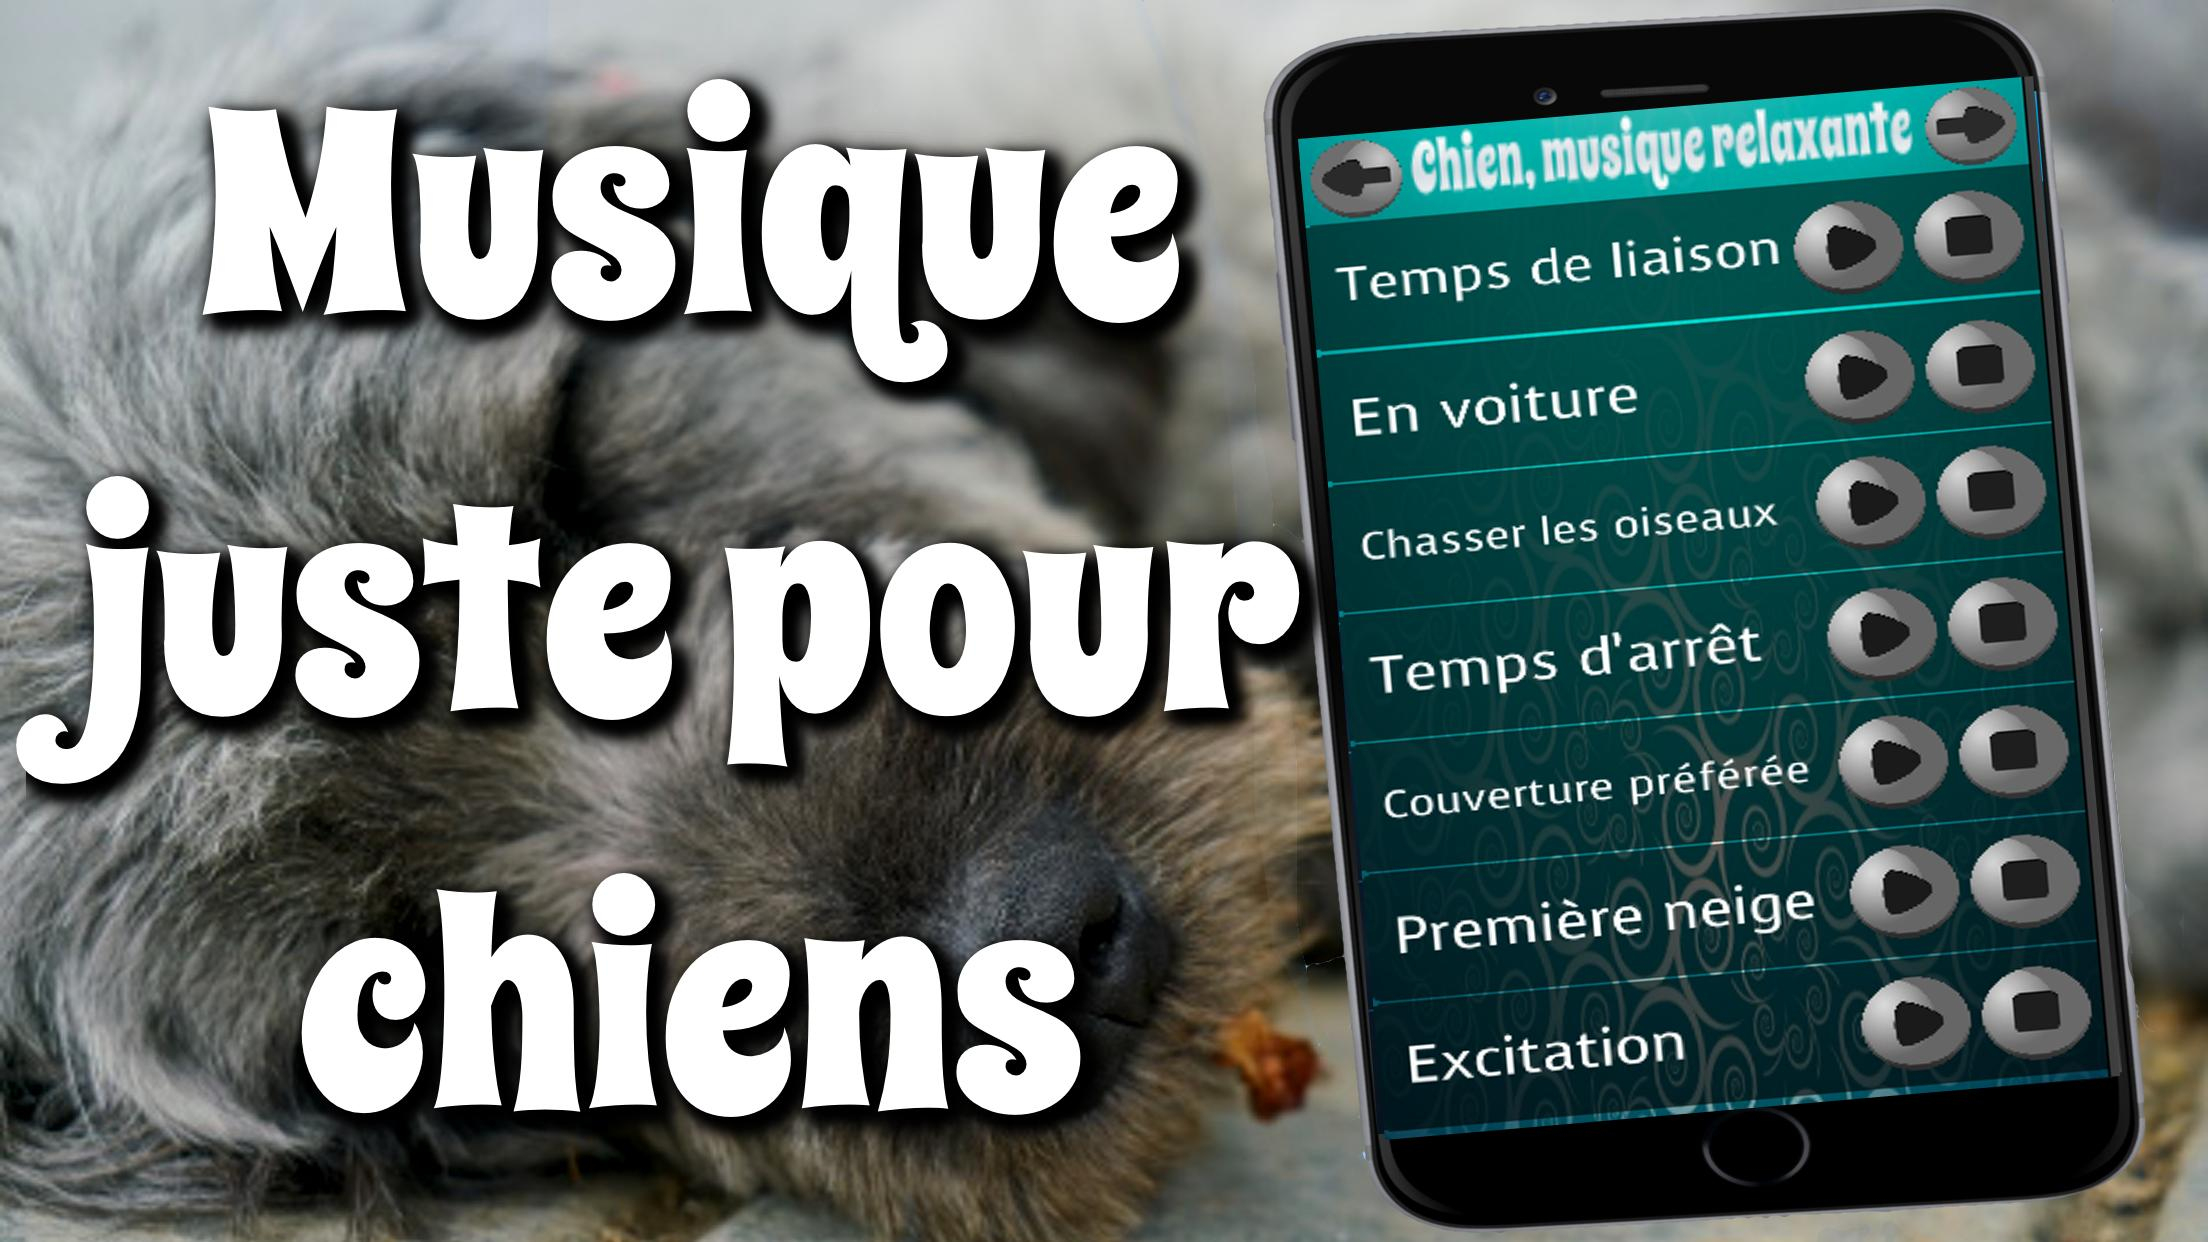 Chien, Musique Relaxante For Android - Apk Download pour Image Relaxante